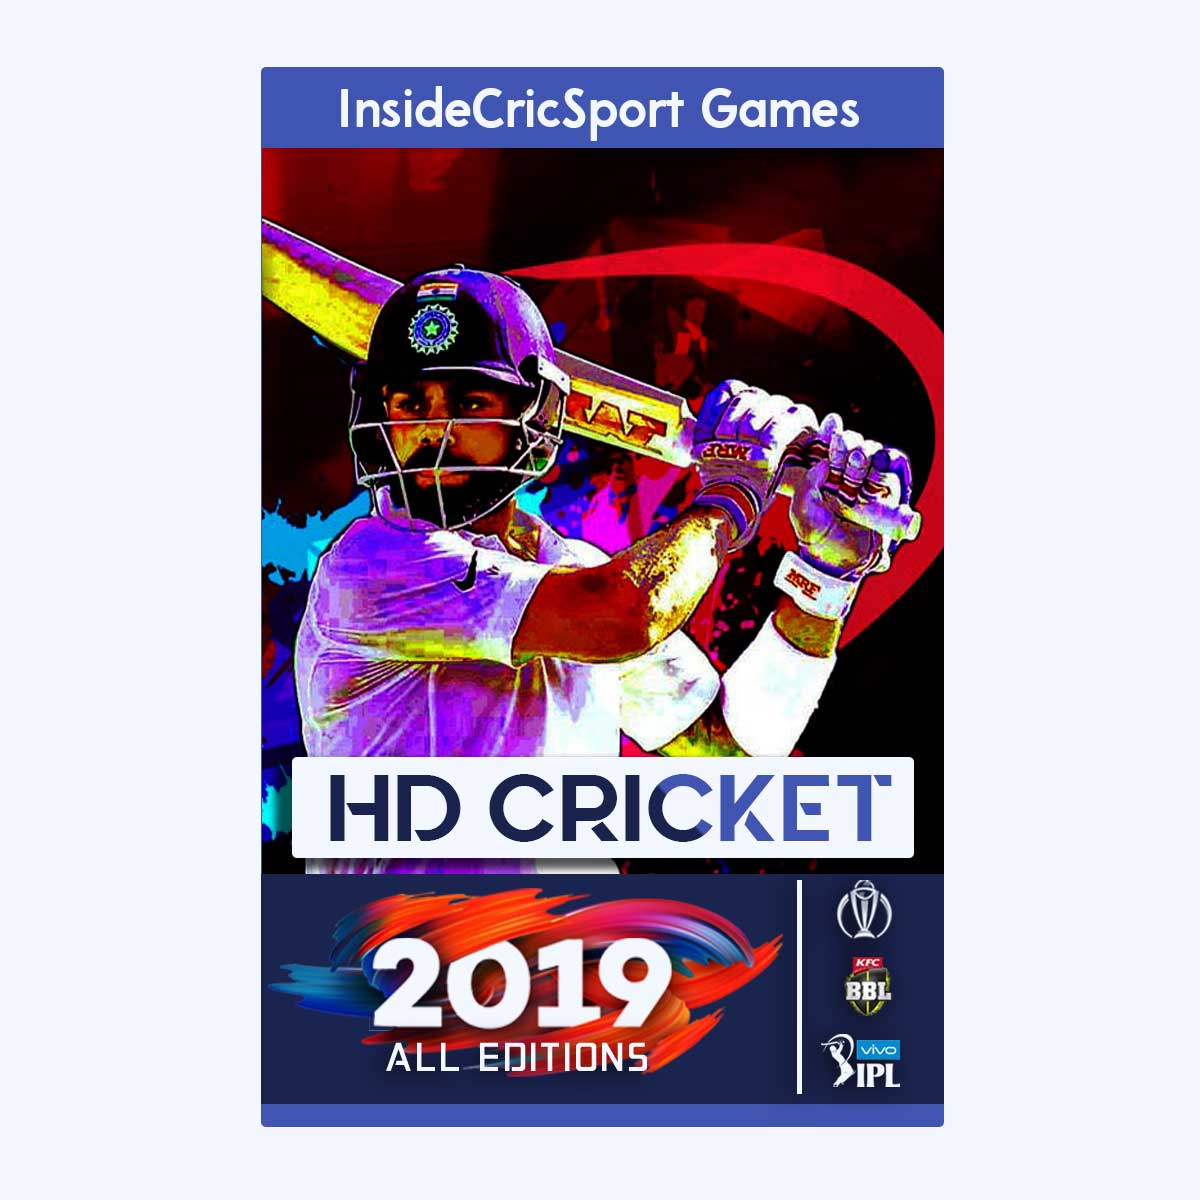 Cricket-19-Product-Image